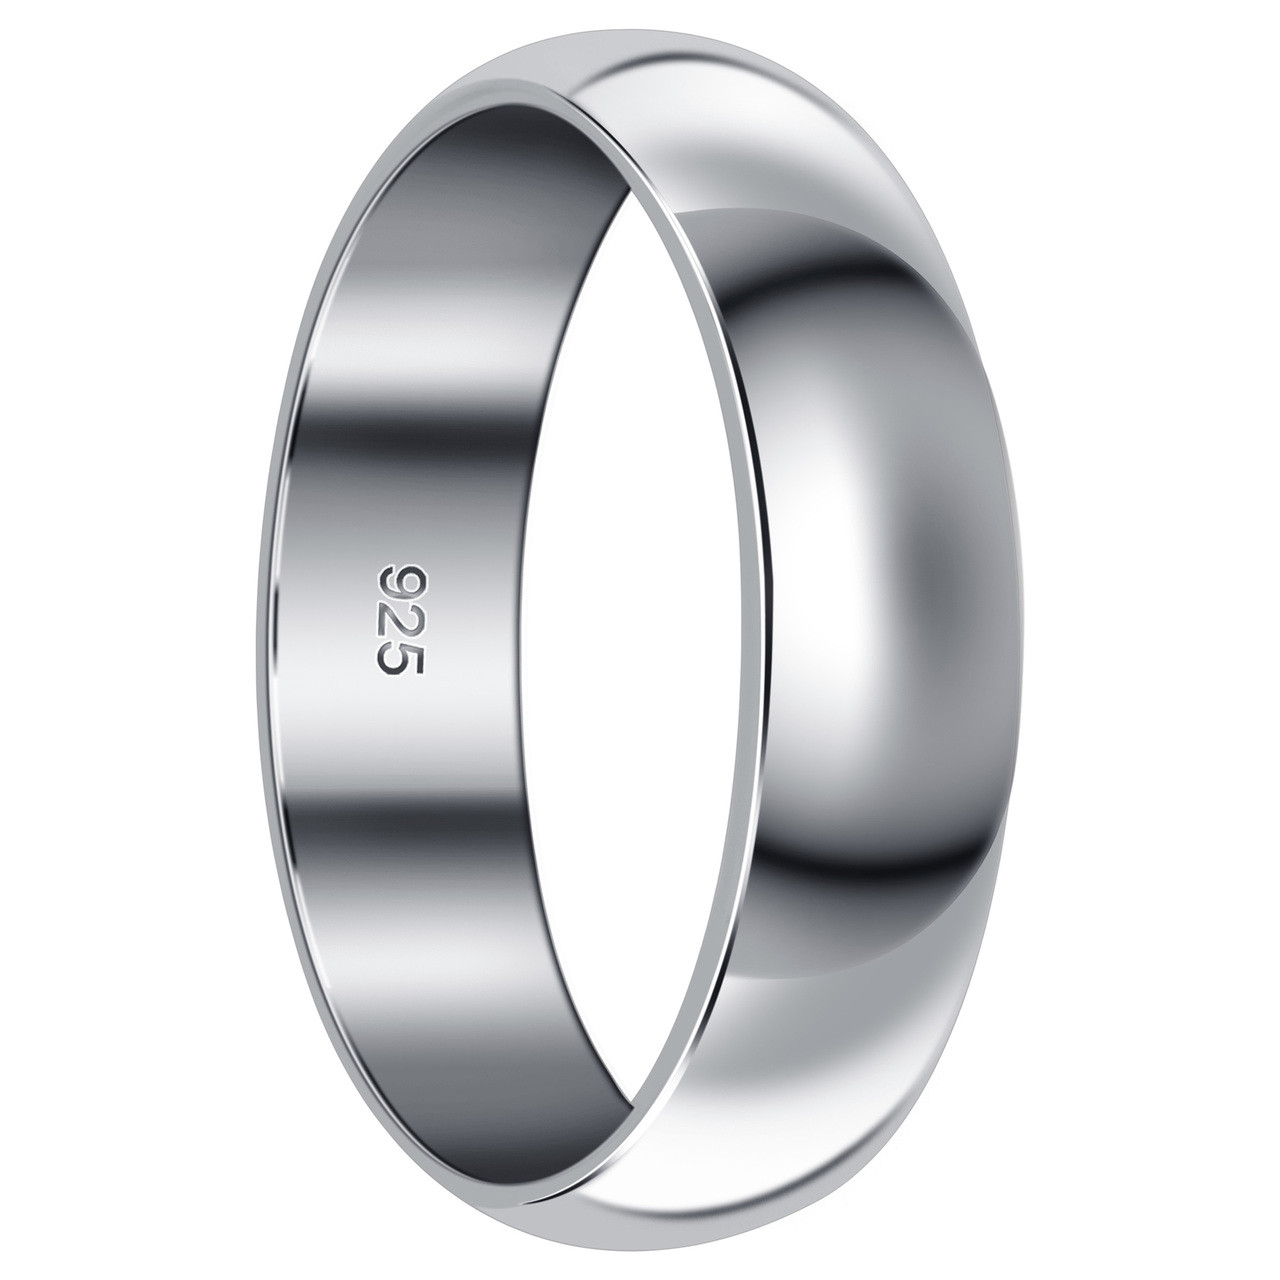 Sterling Silver Wedding Bands.925 Sterling Silver 6mm Wedding Band Bdr1018